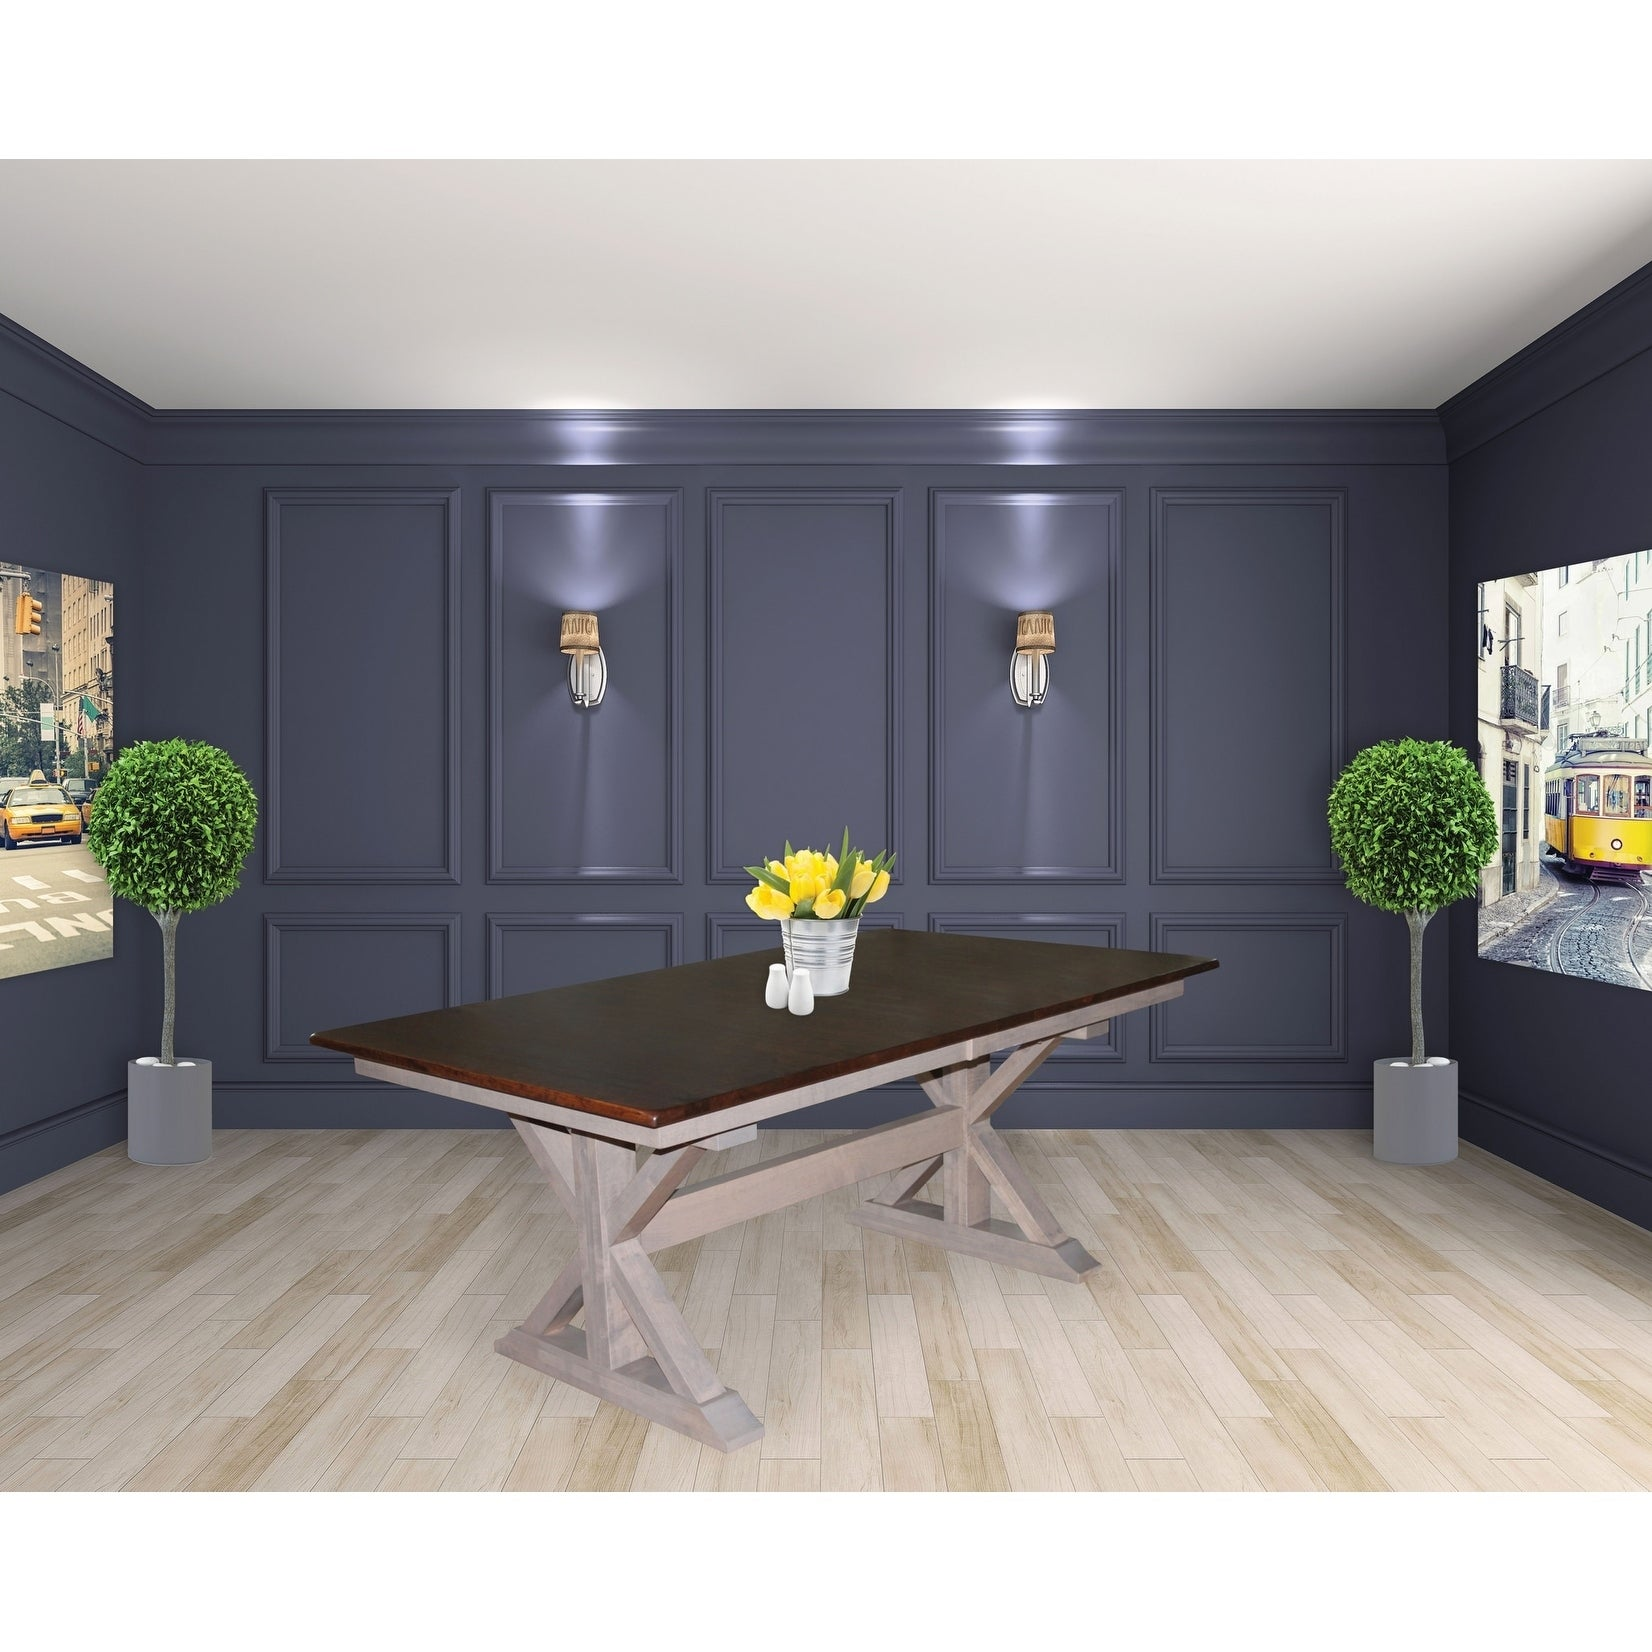 X Base Double Pedestal 6 Foot Dining Table W 18 Erfly Leaf Extension Free Shipping Today 25322499